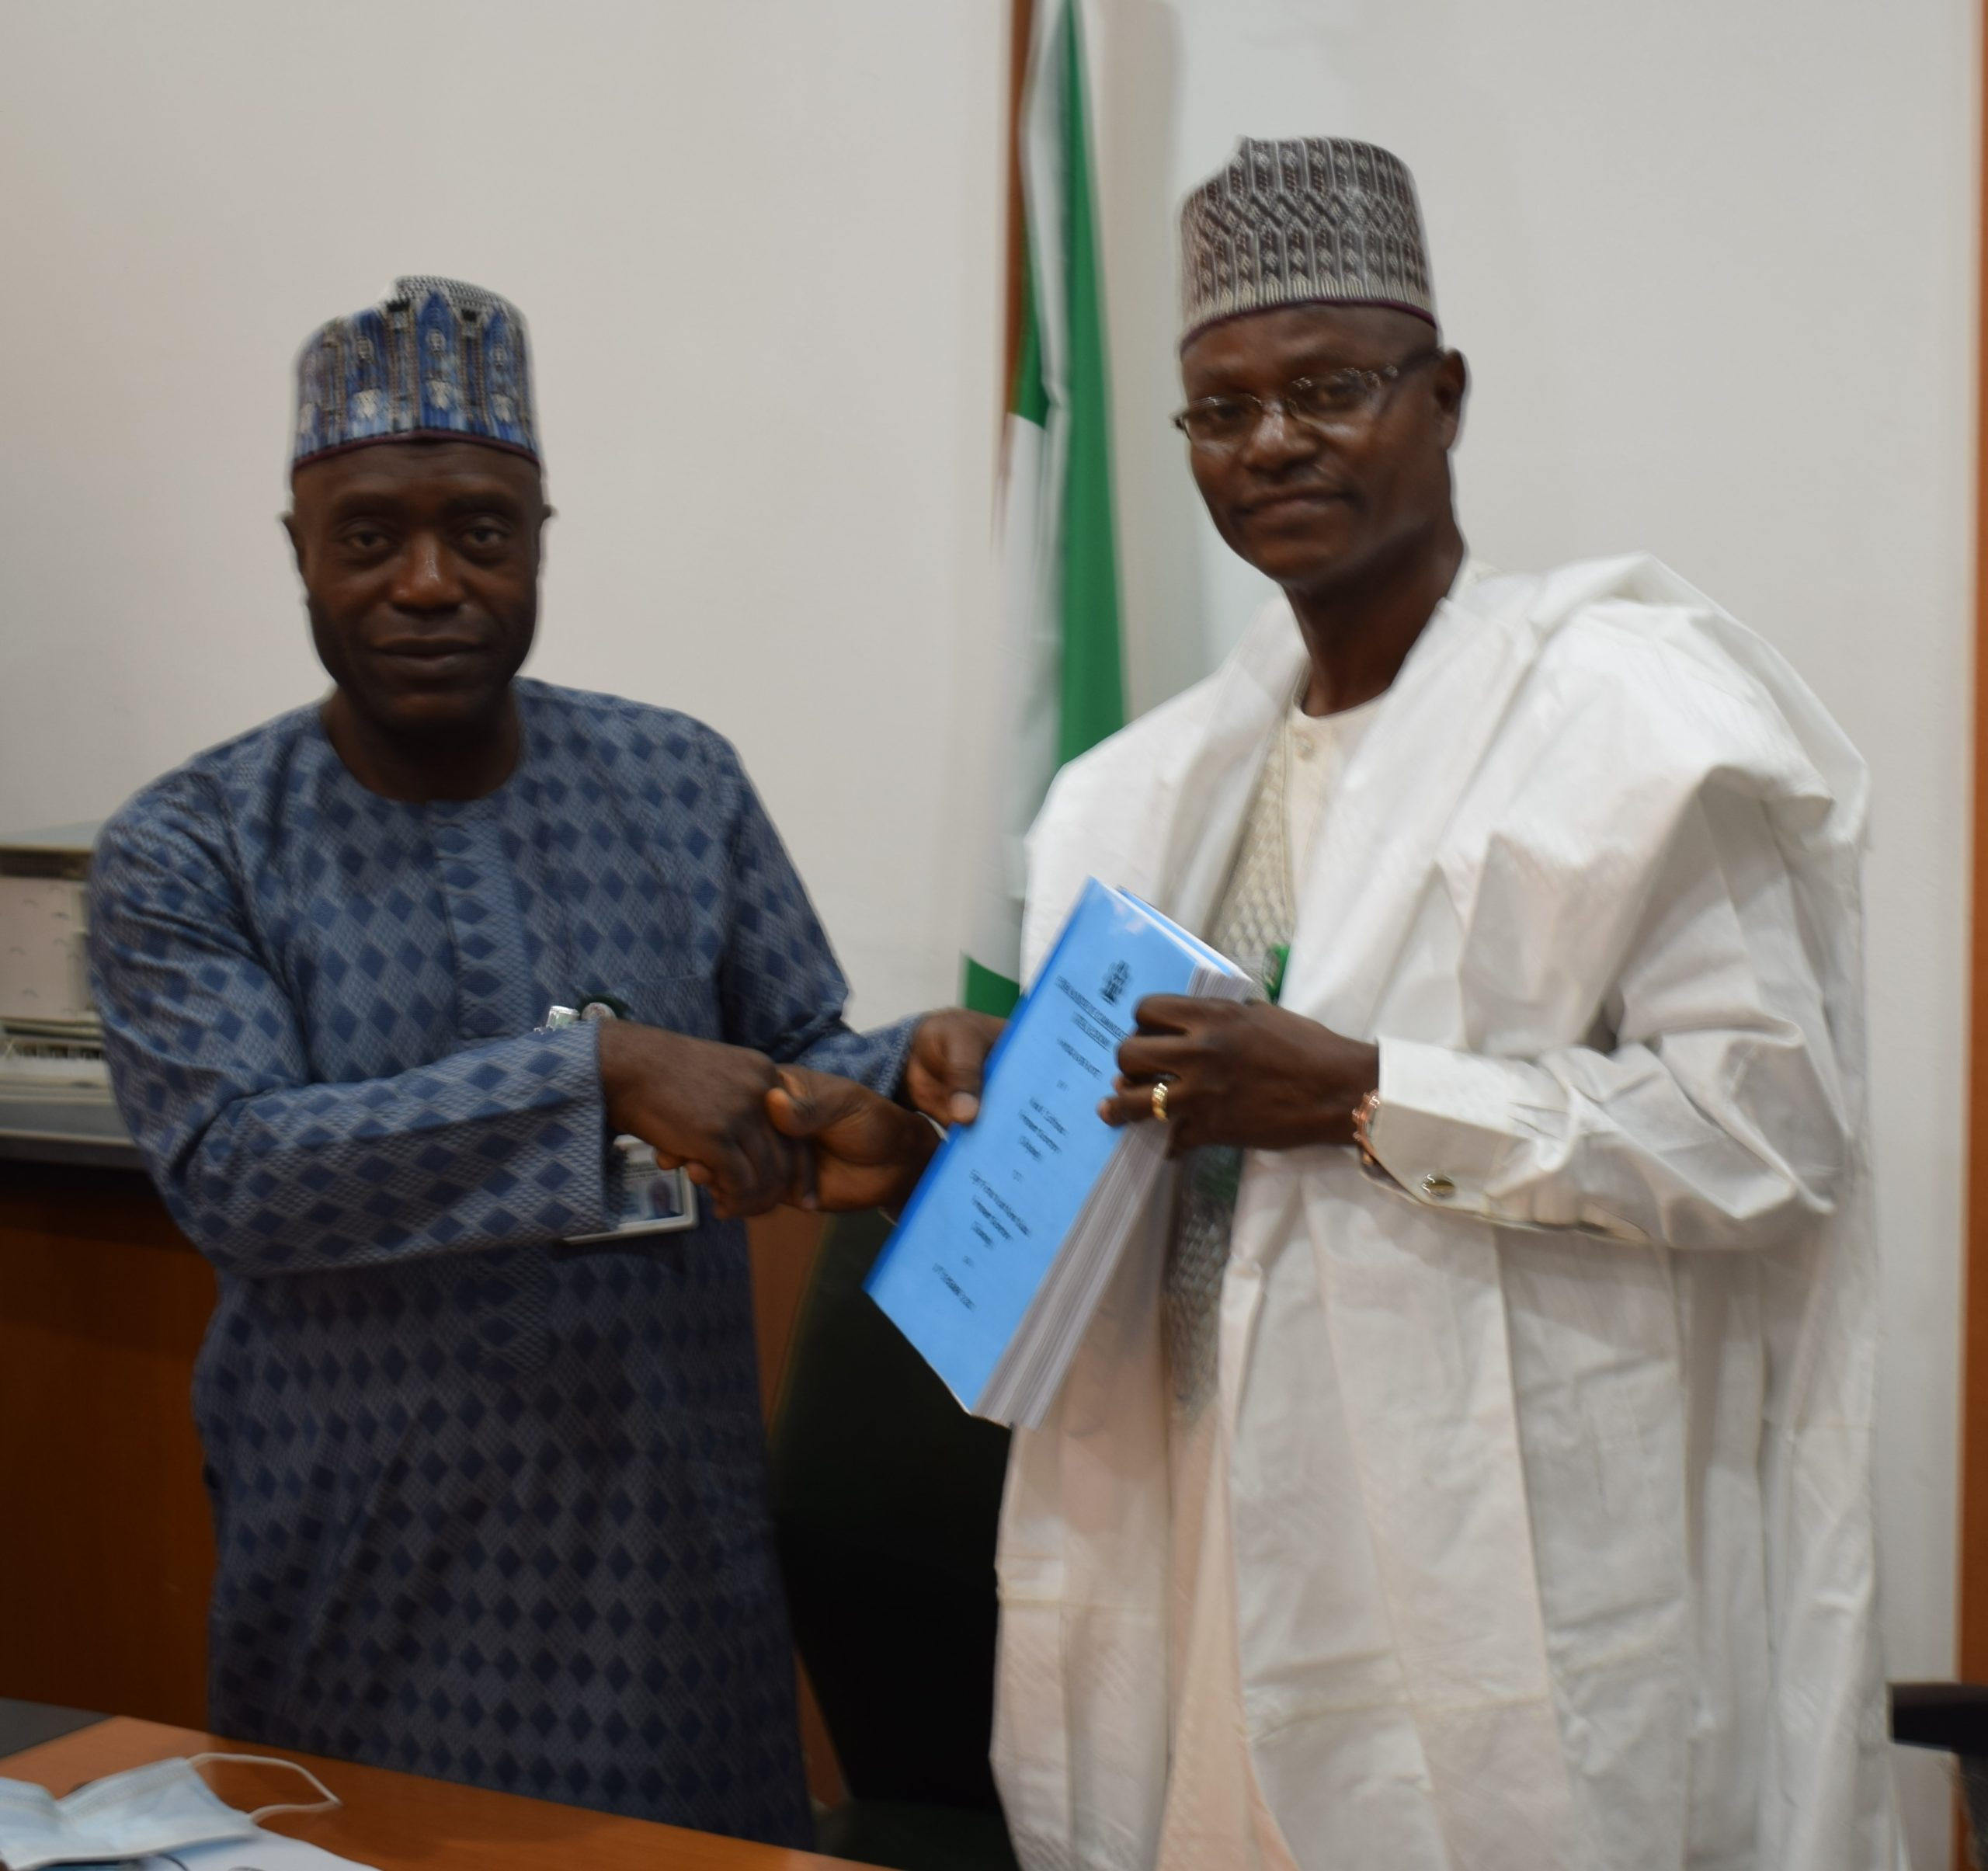 L-R: Outgoing Permanent Secretary, Mr. Musa Istifanus and incoming Permanent Secretary, Federal Ministry of Communications and Digital Economy, Engr. Festus Yusuf Daudu during the official handing over ceremony which took place today at the Ministry's headquarters in Abuja.